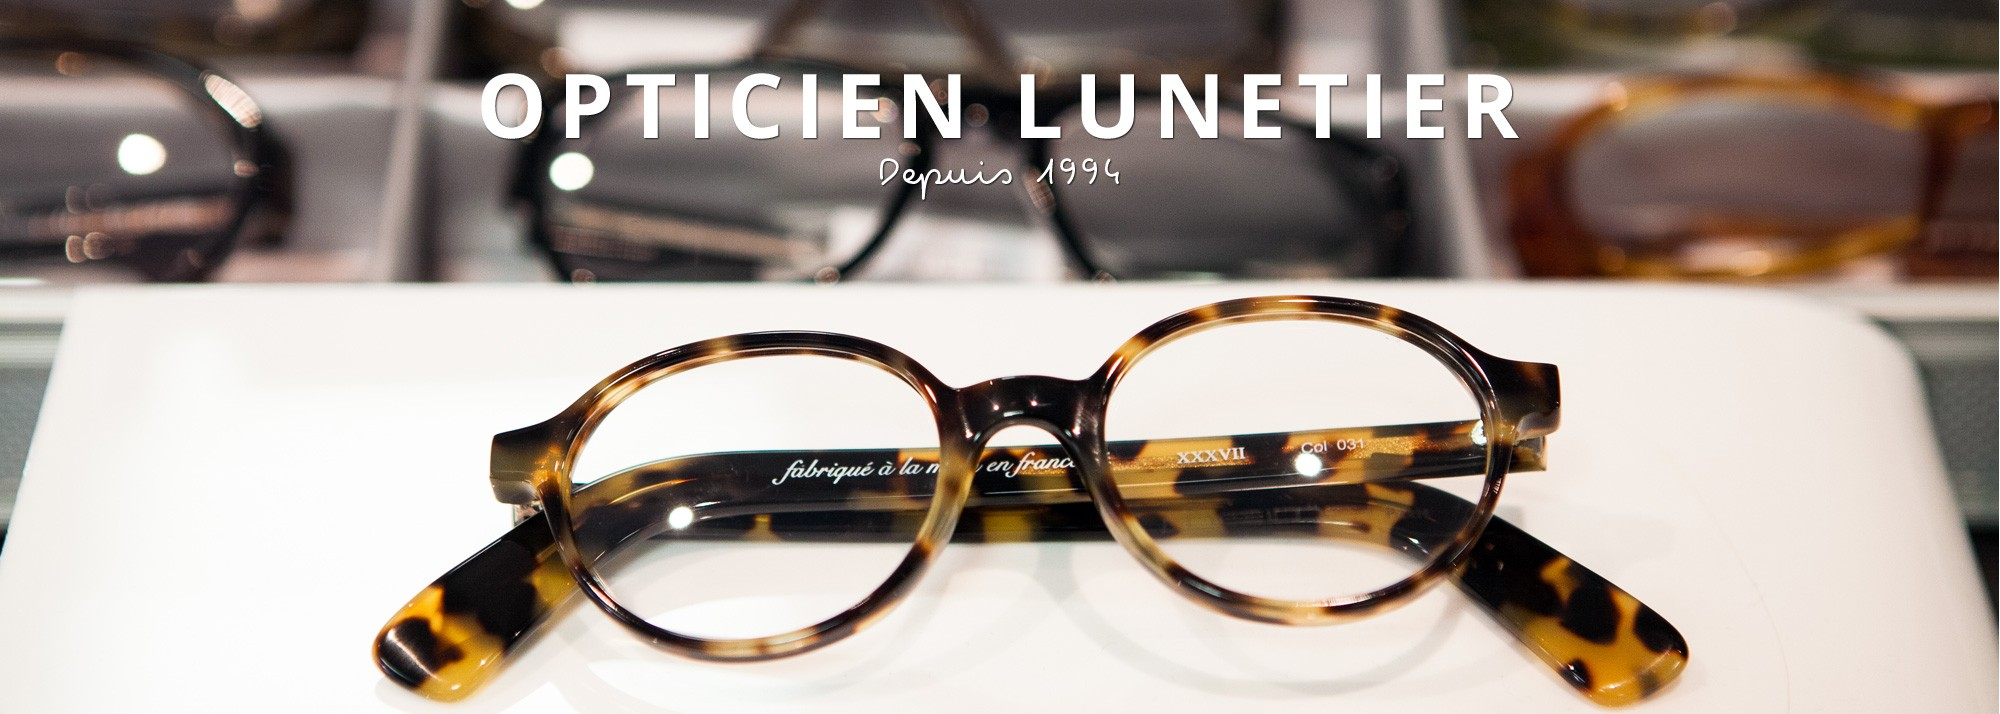 opticien lunetier puyricard